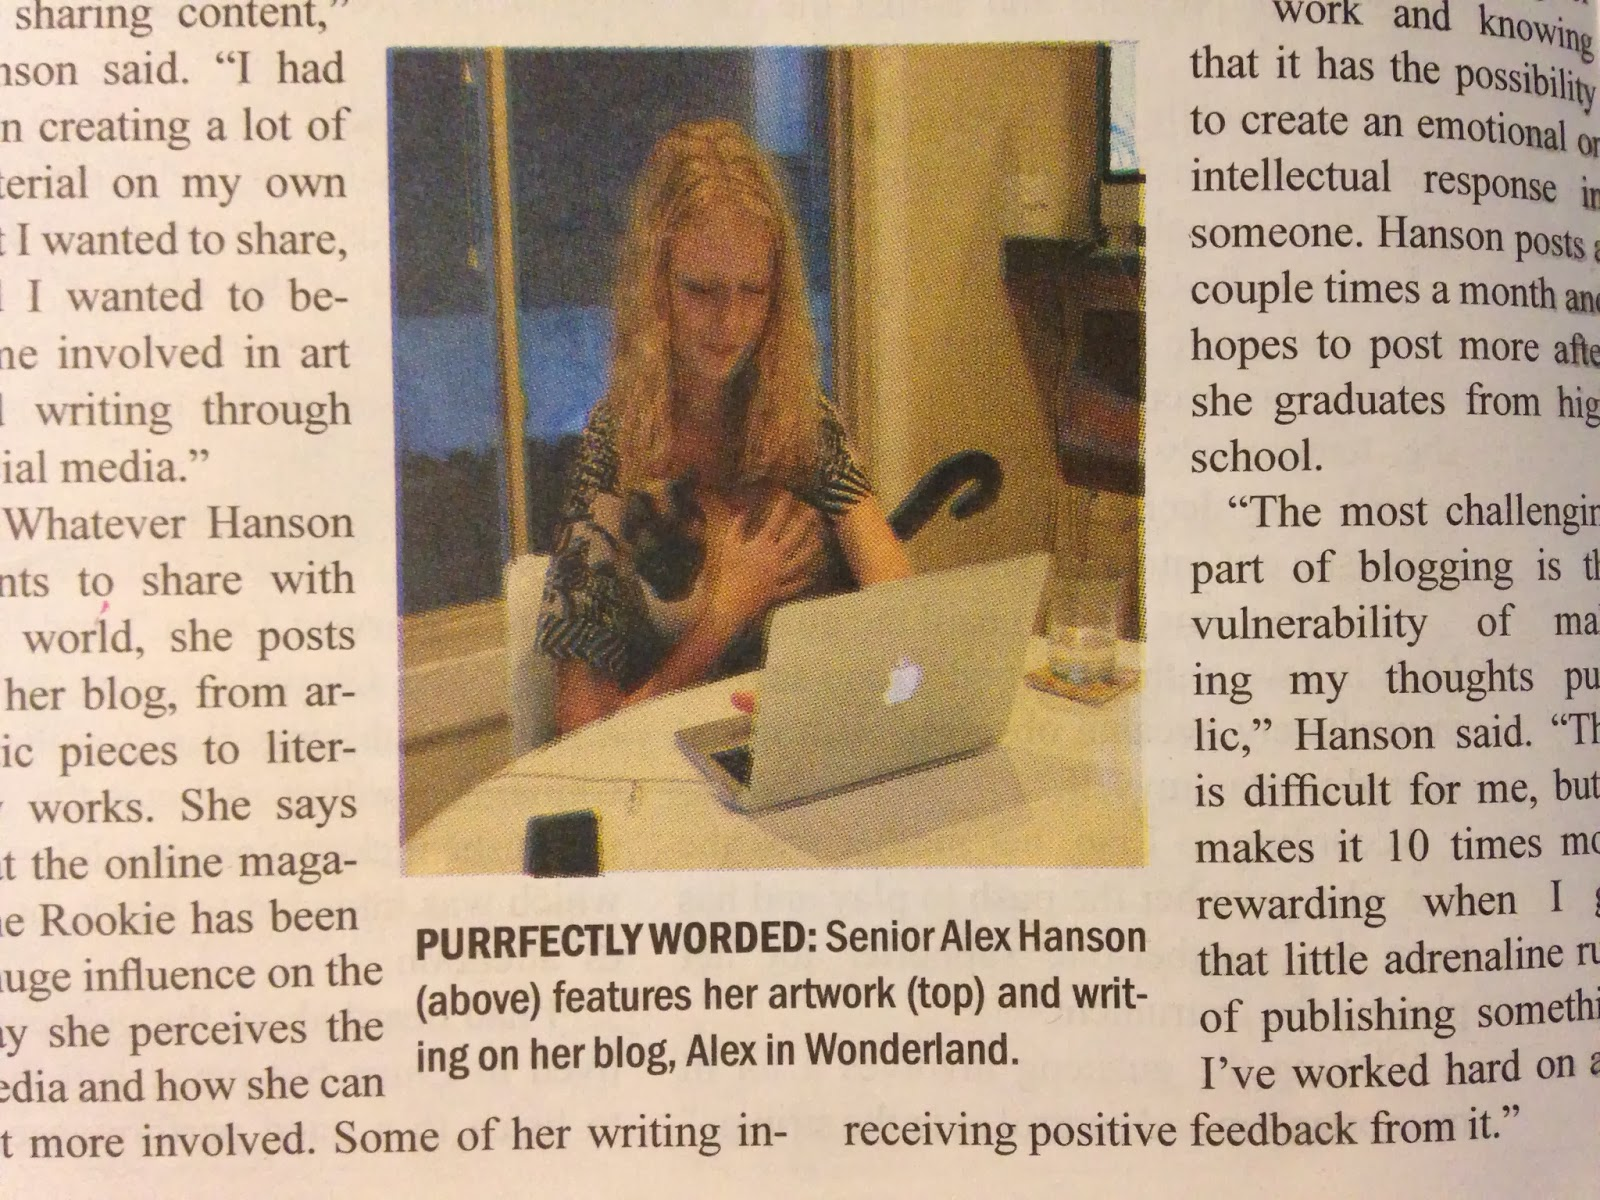 This picture was featured in my high school's newspaper when they ran an article about student bloggers.